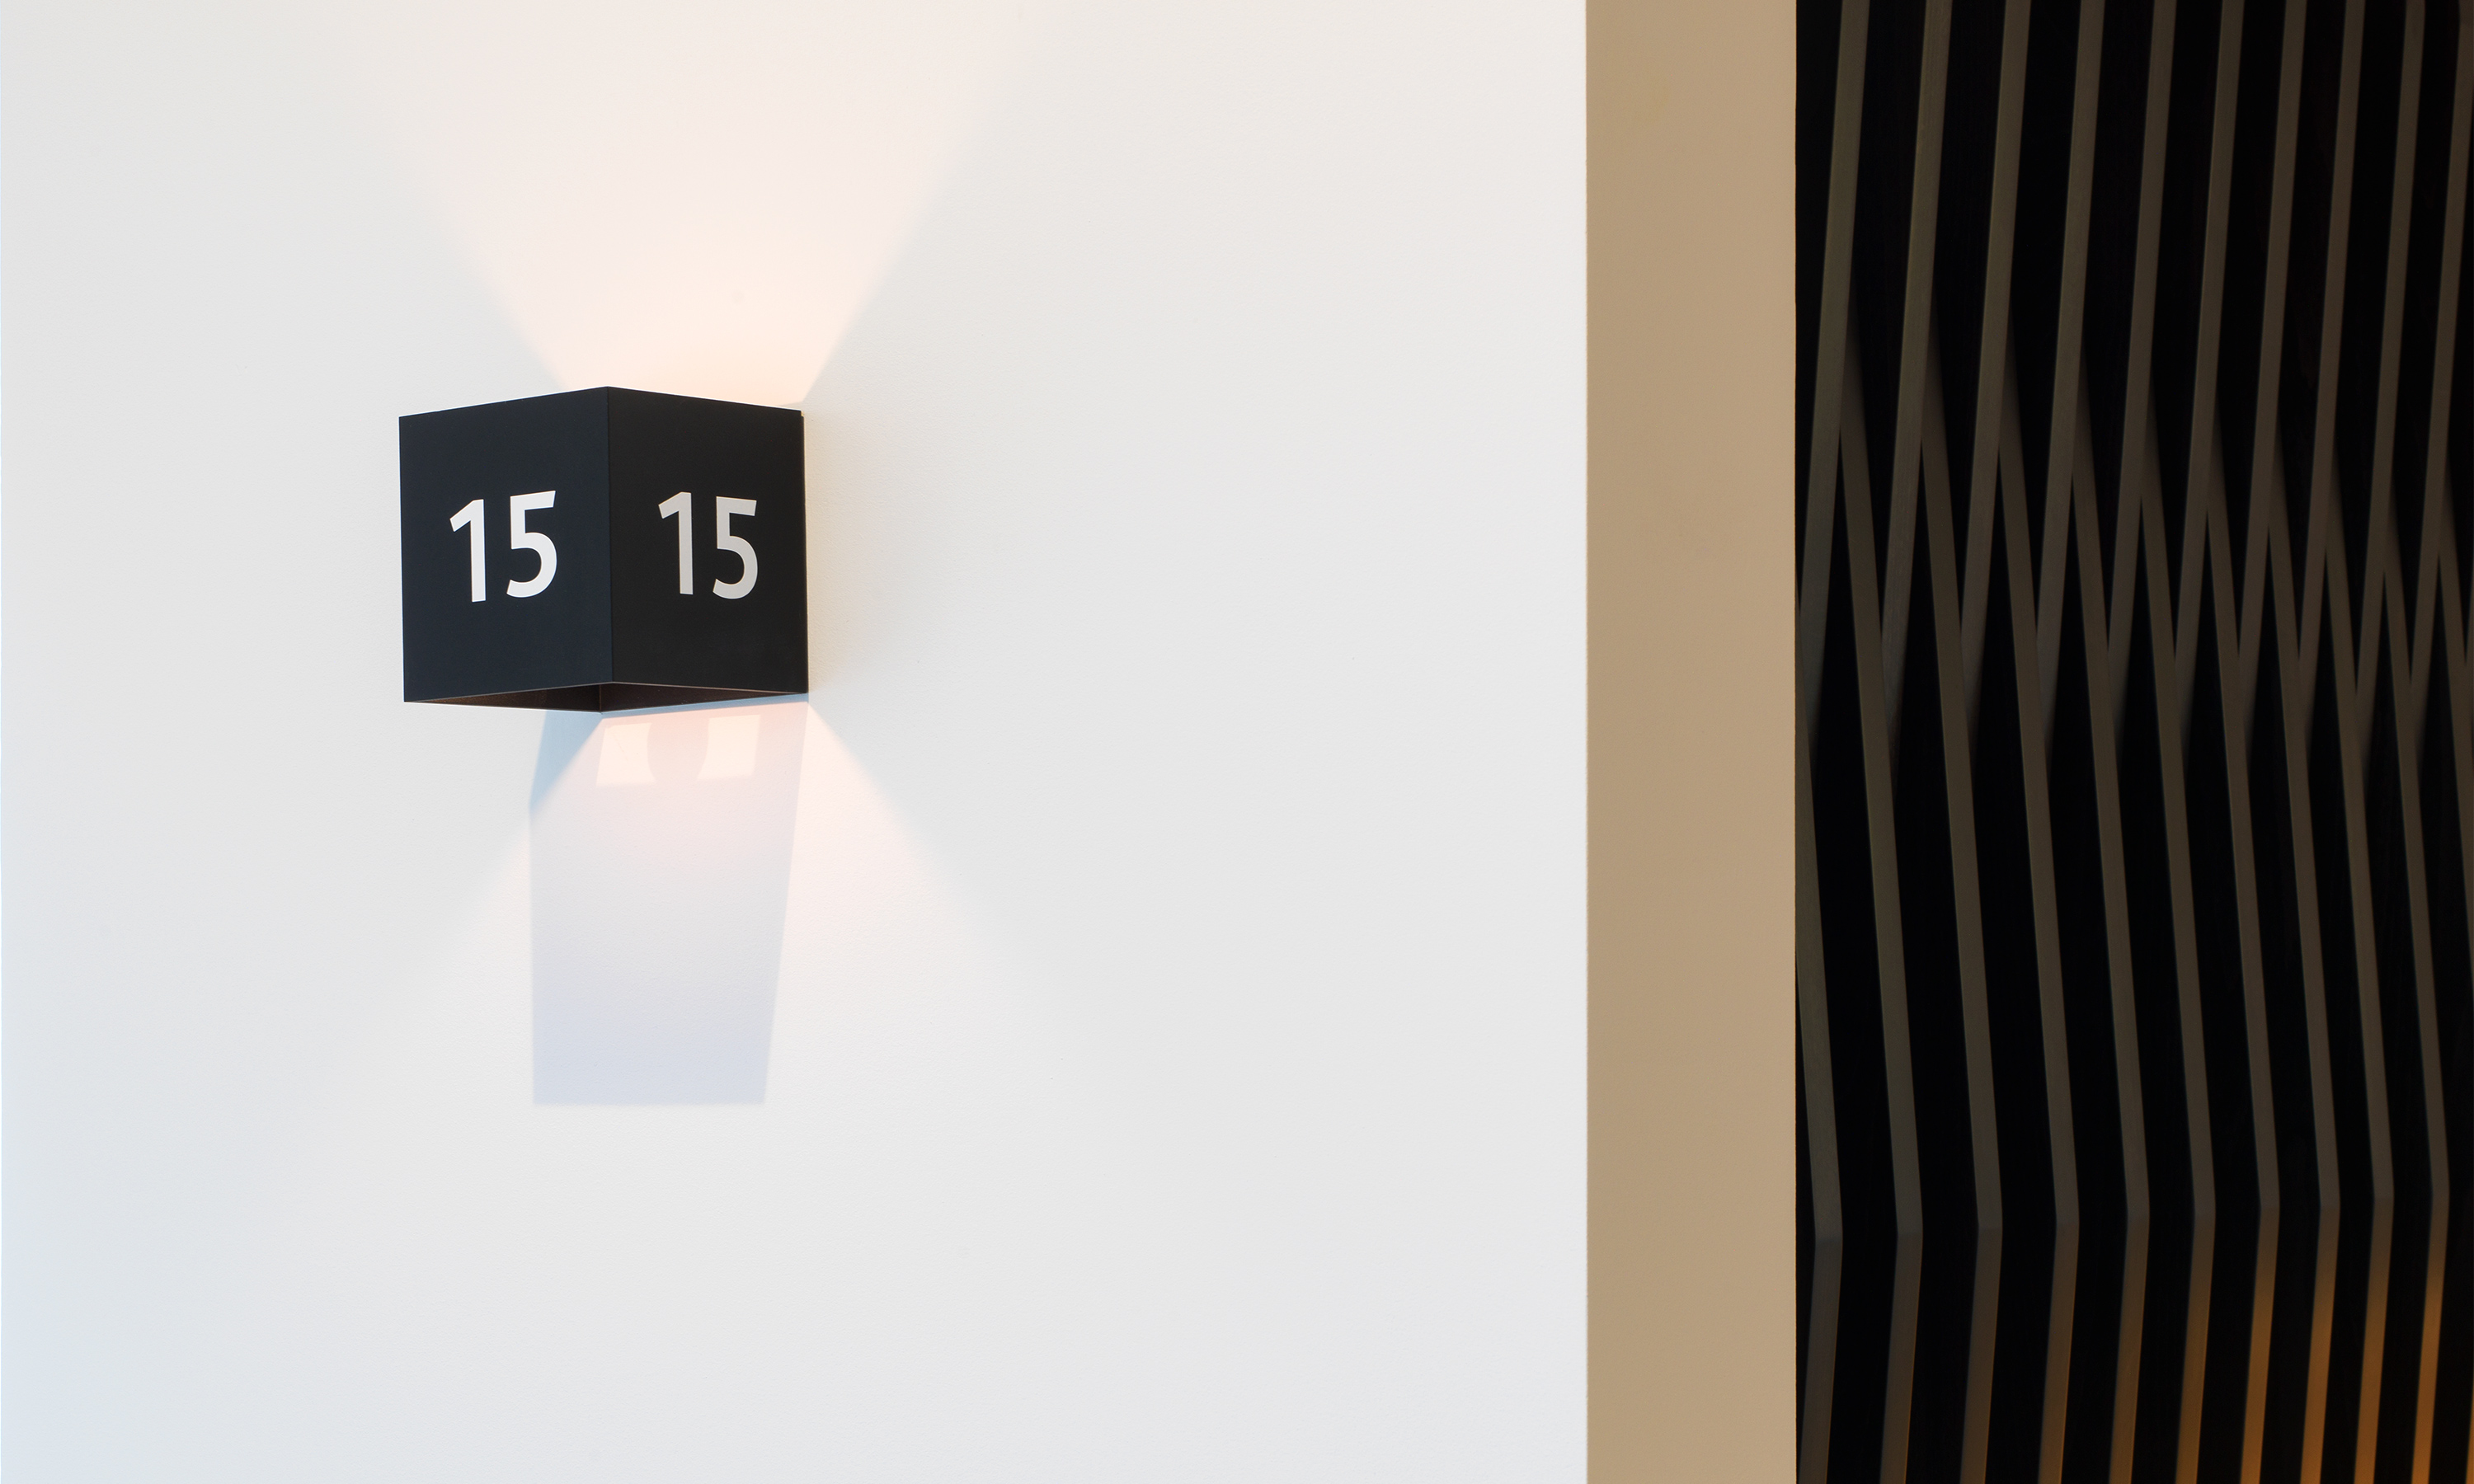 Branding by Neon - Nabarro Law Firm - 125 London Wall Lift Light and room number designed by Dana Robertson